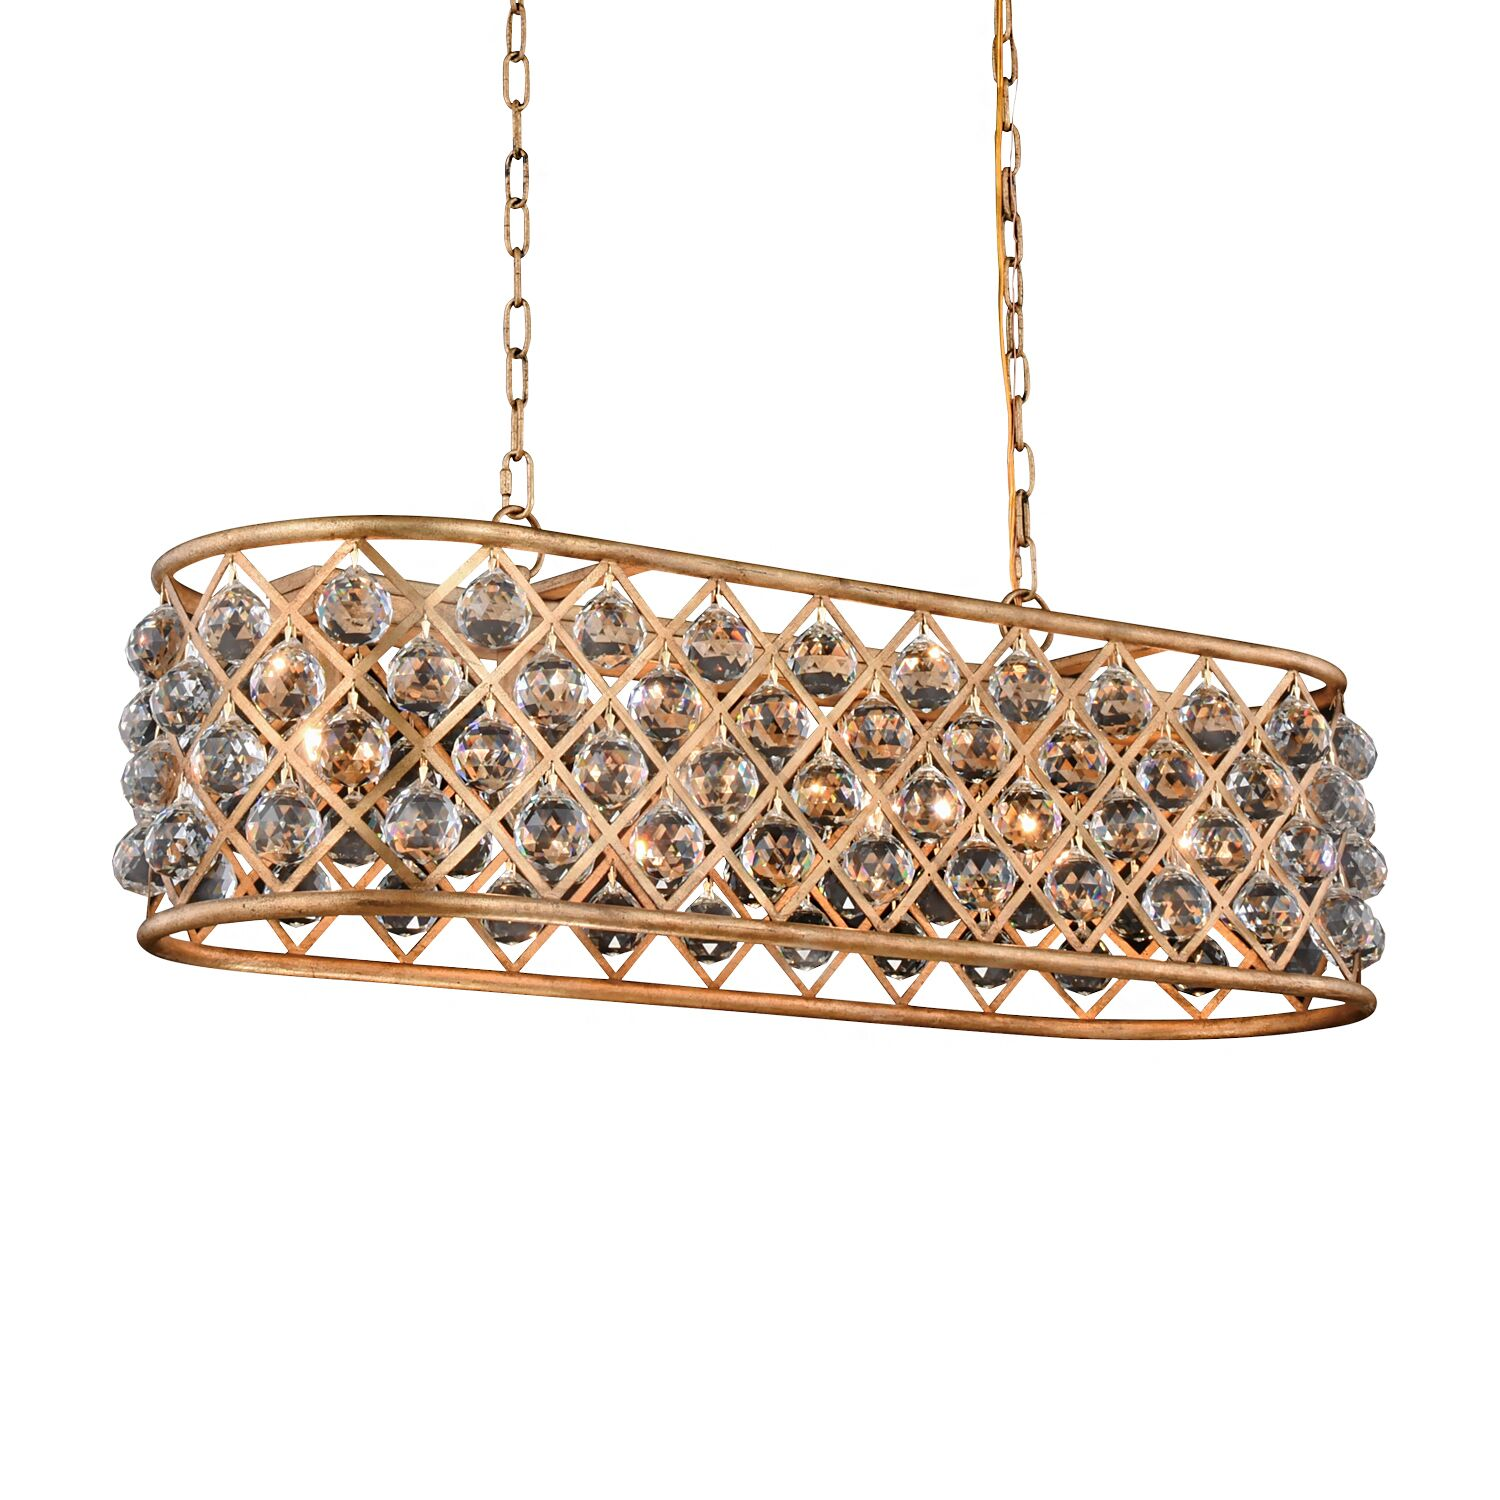 Lulsgate 6-Light Chandelier Shade Color: Clear, Finish: Gold, Bulb Type: LED